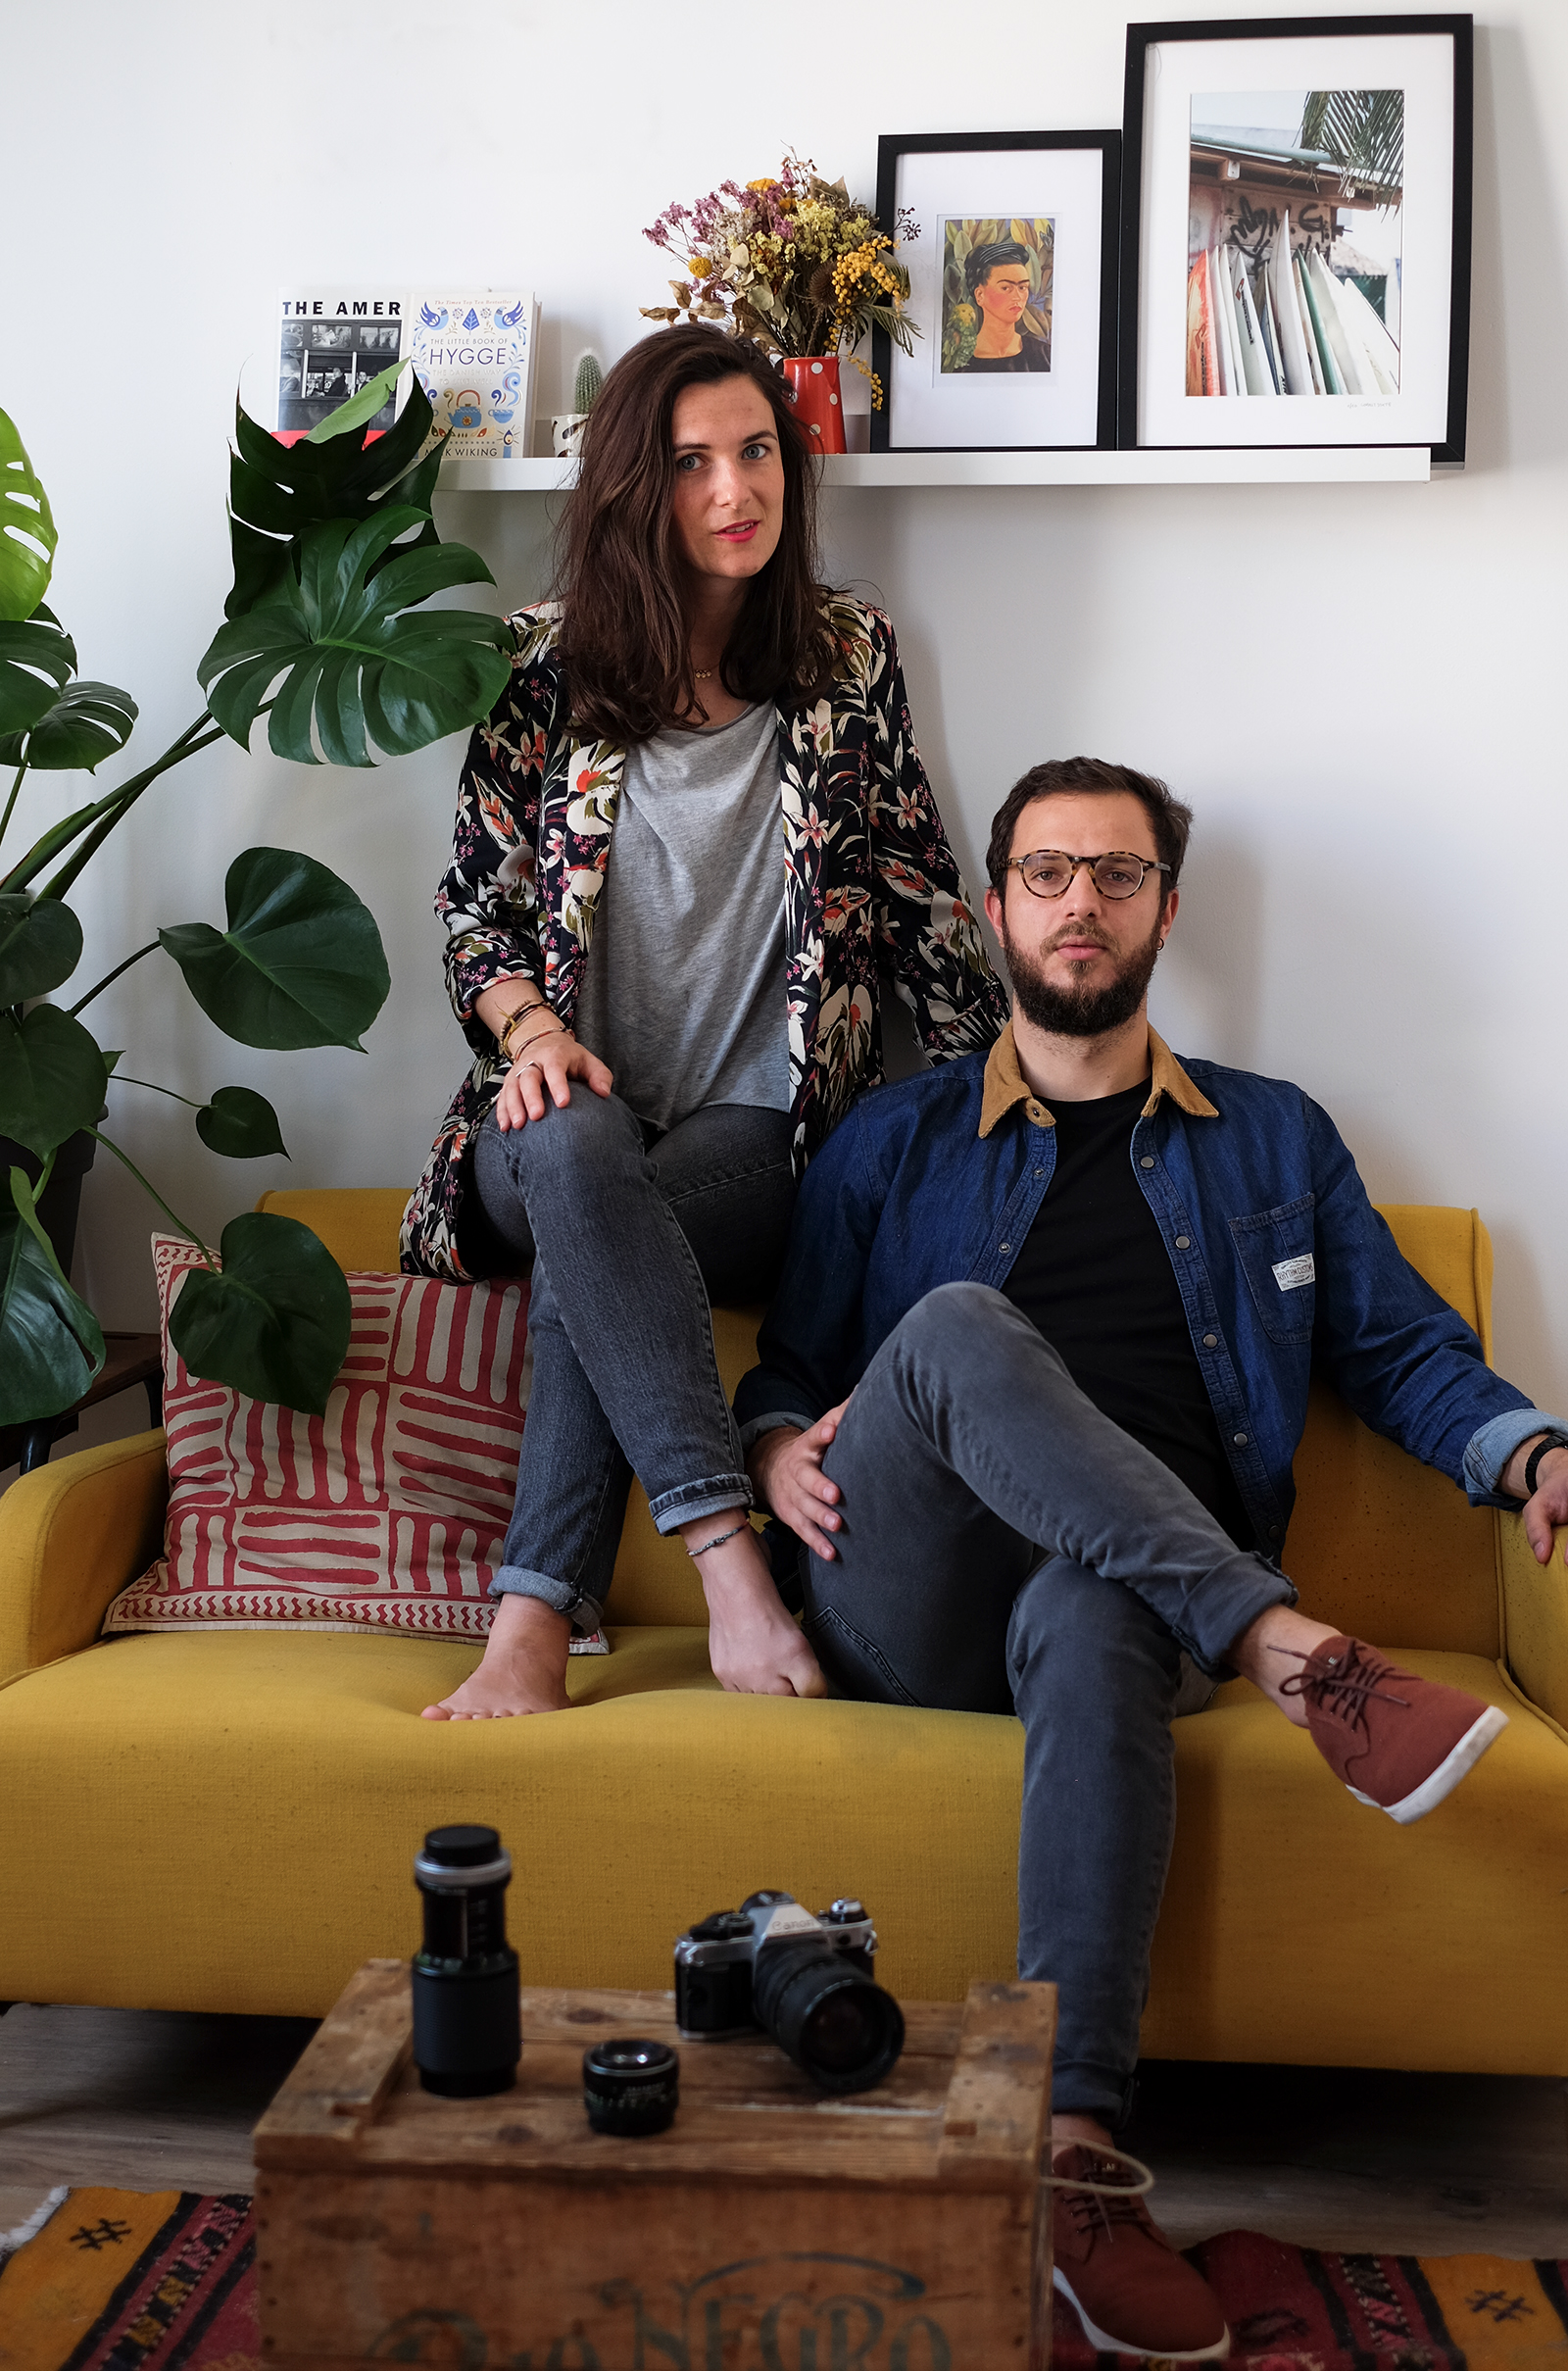 Floriane dupont and basilio papadakis portrait